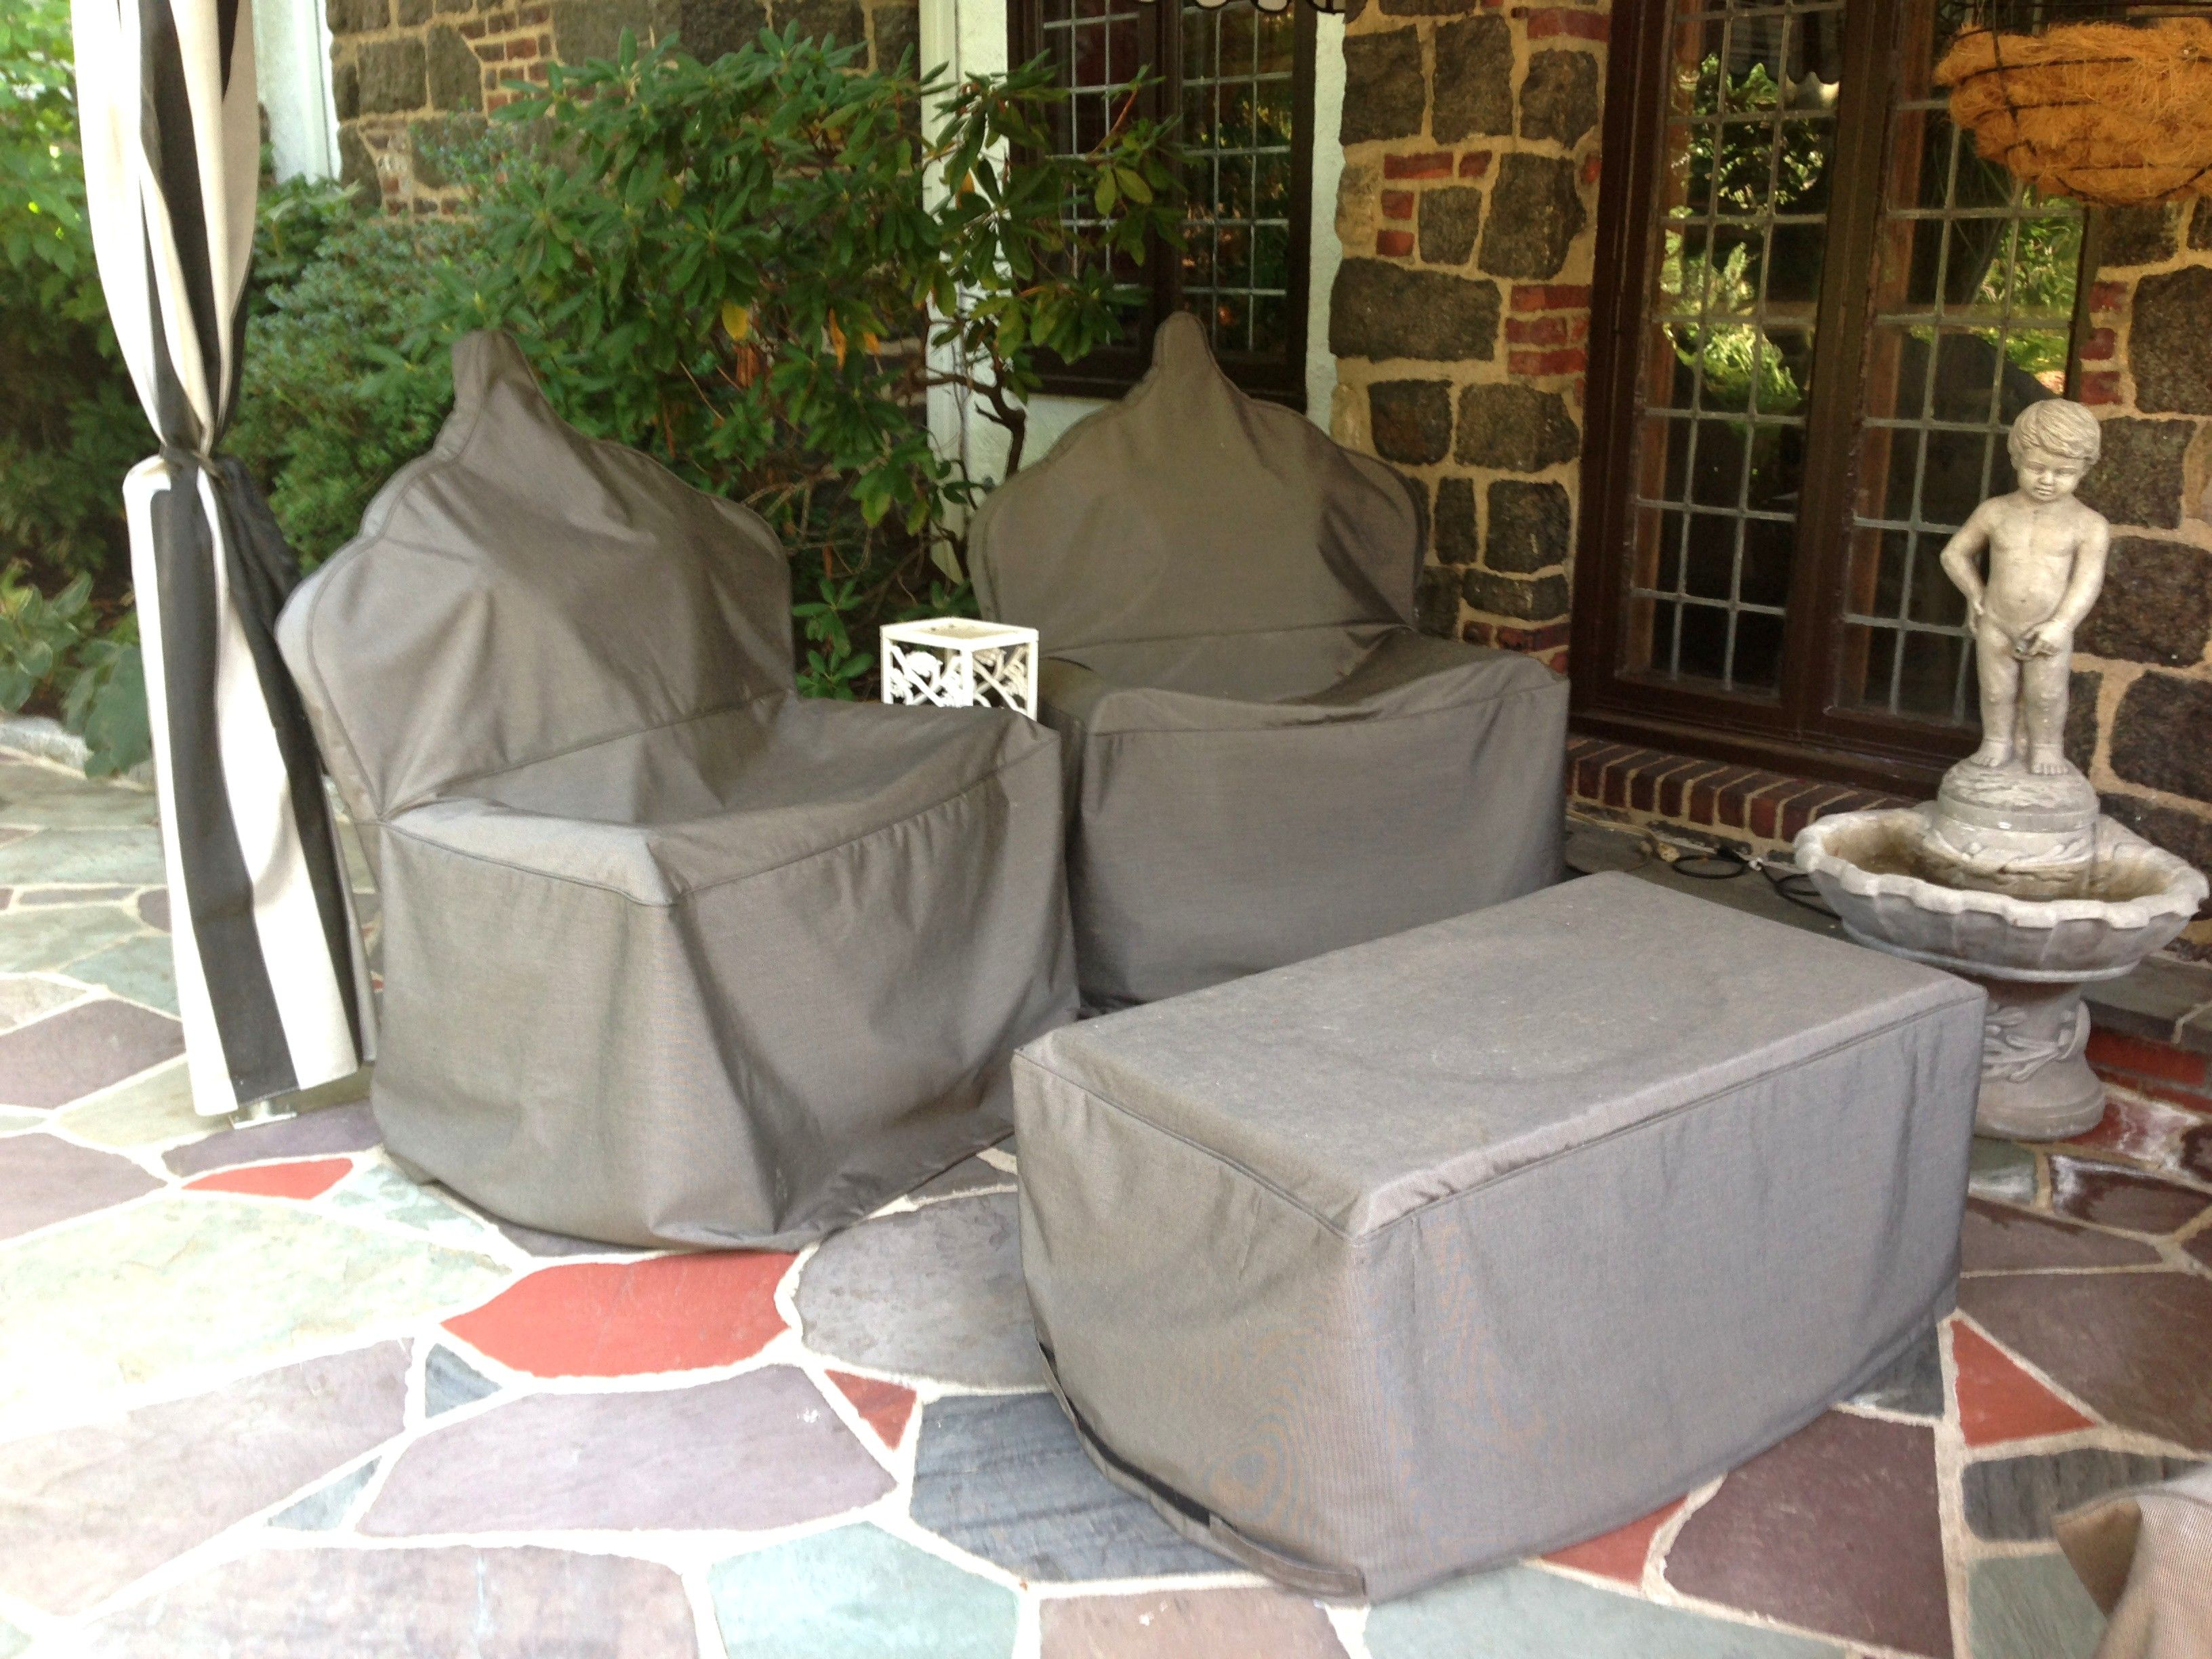 Canvas Covers For Outdoor Chairs Chair Can Have A Tired Looking Old Bit Of Furniture And Breathe New Life Into It